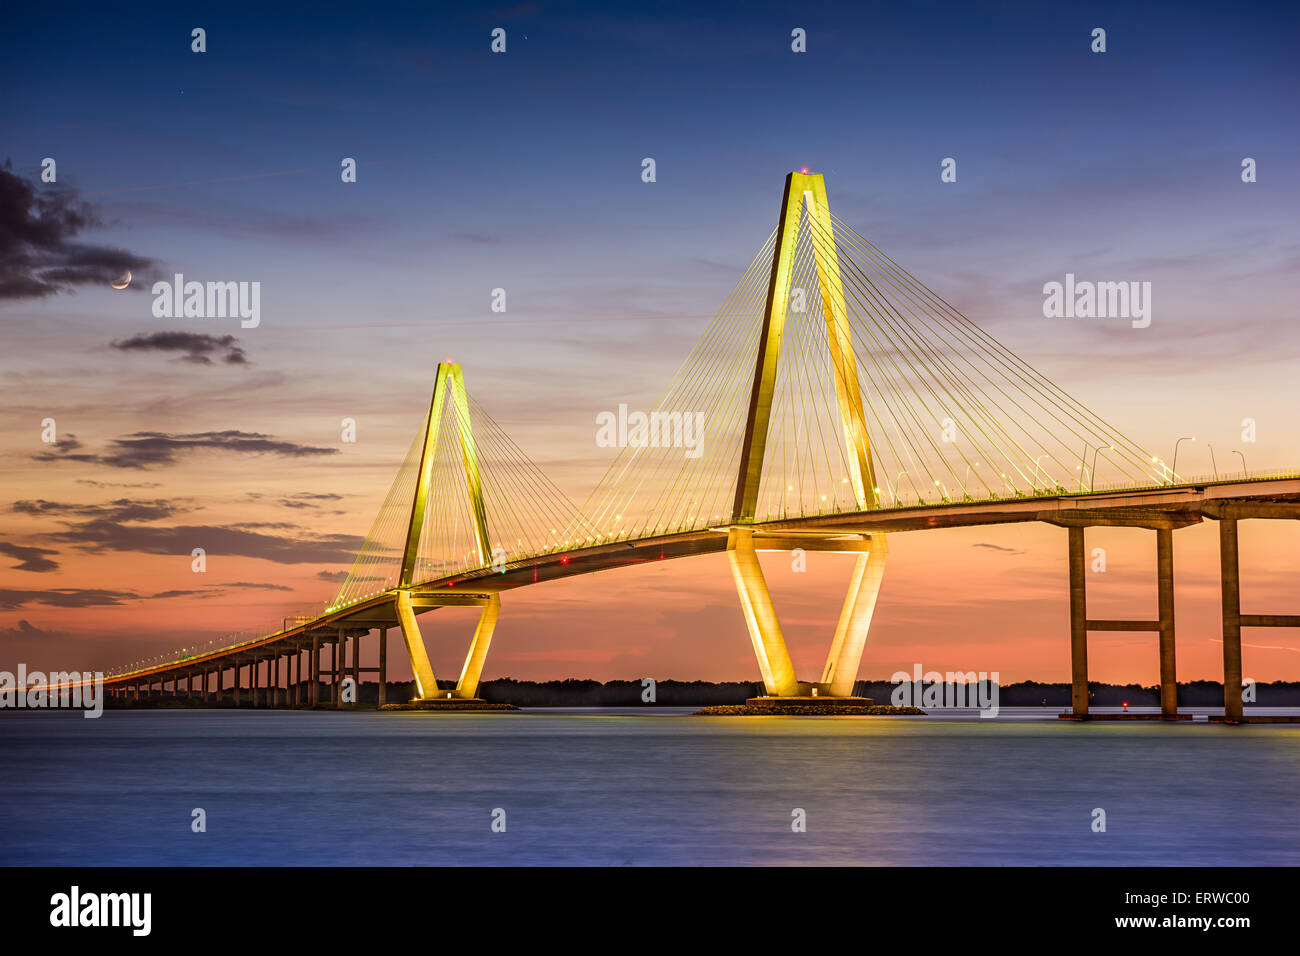 Charleston, South Carolina, USA at Arthur Ravenel Jr. Bridge. - Stock Image